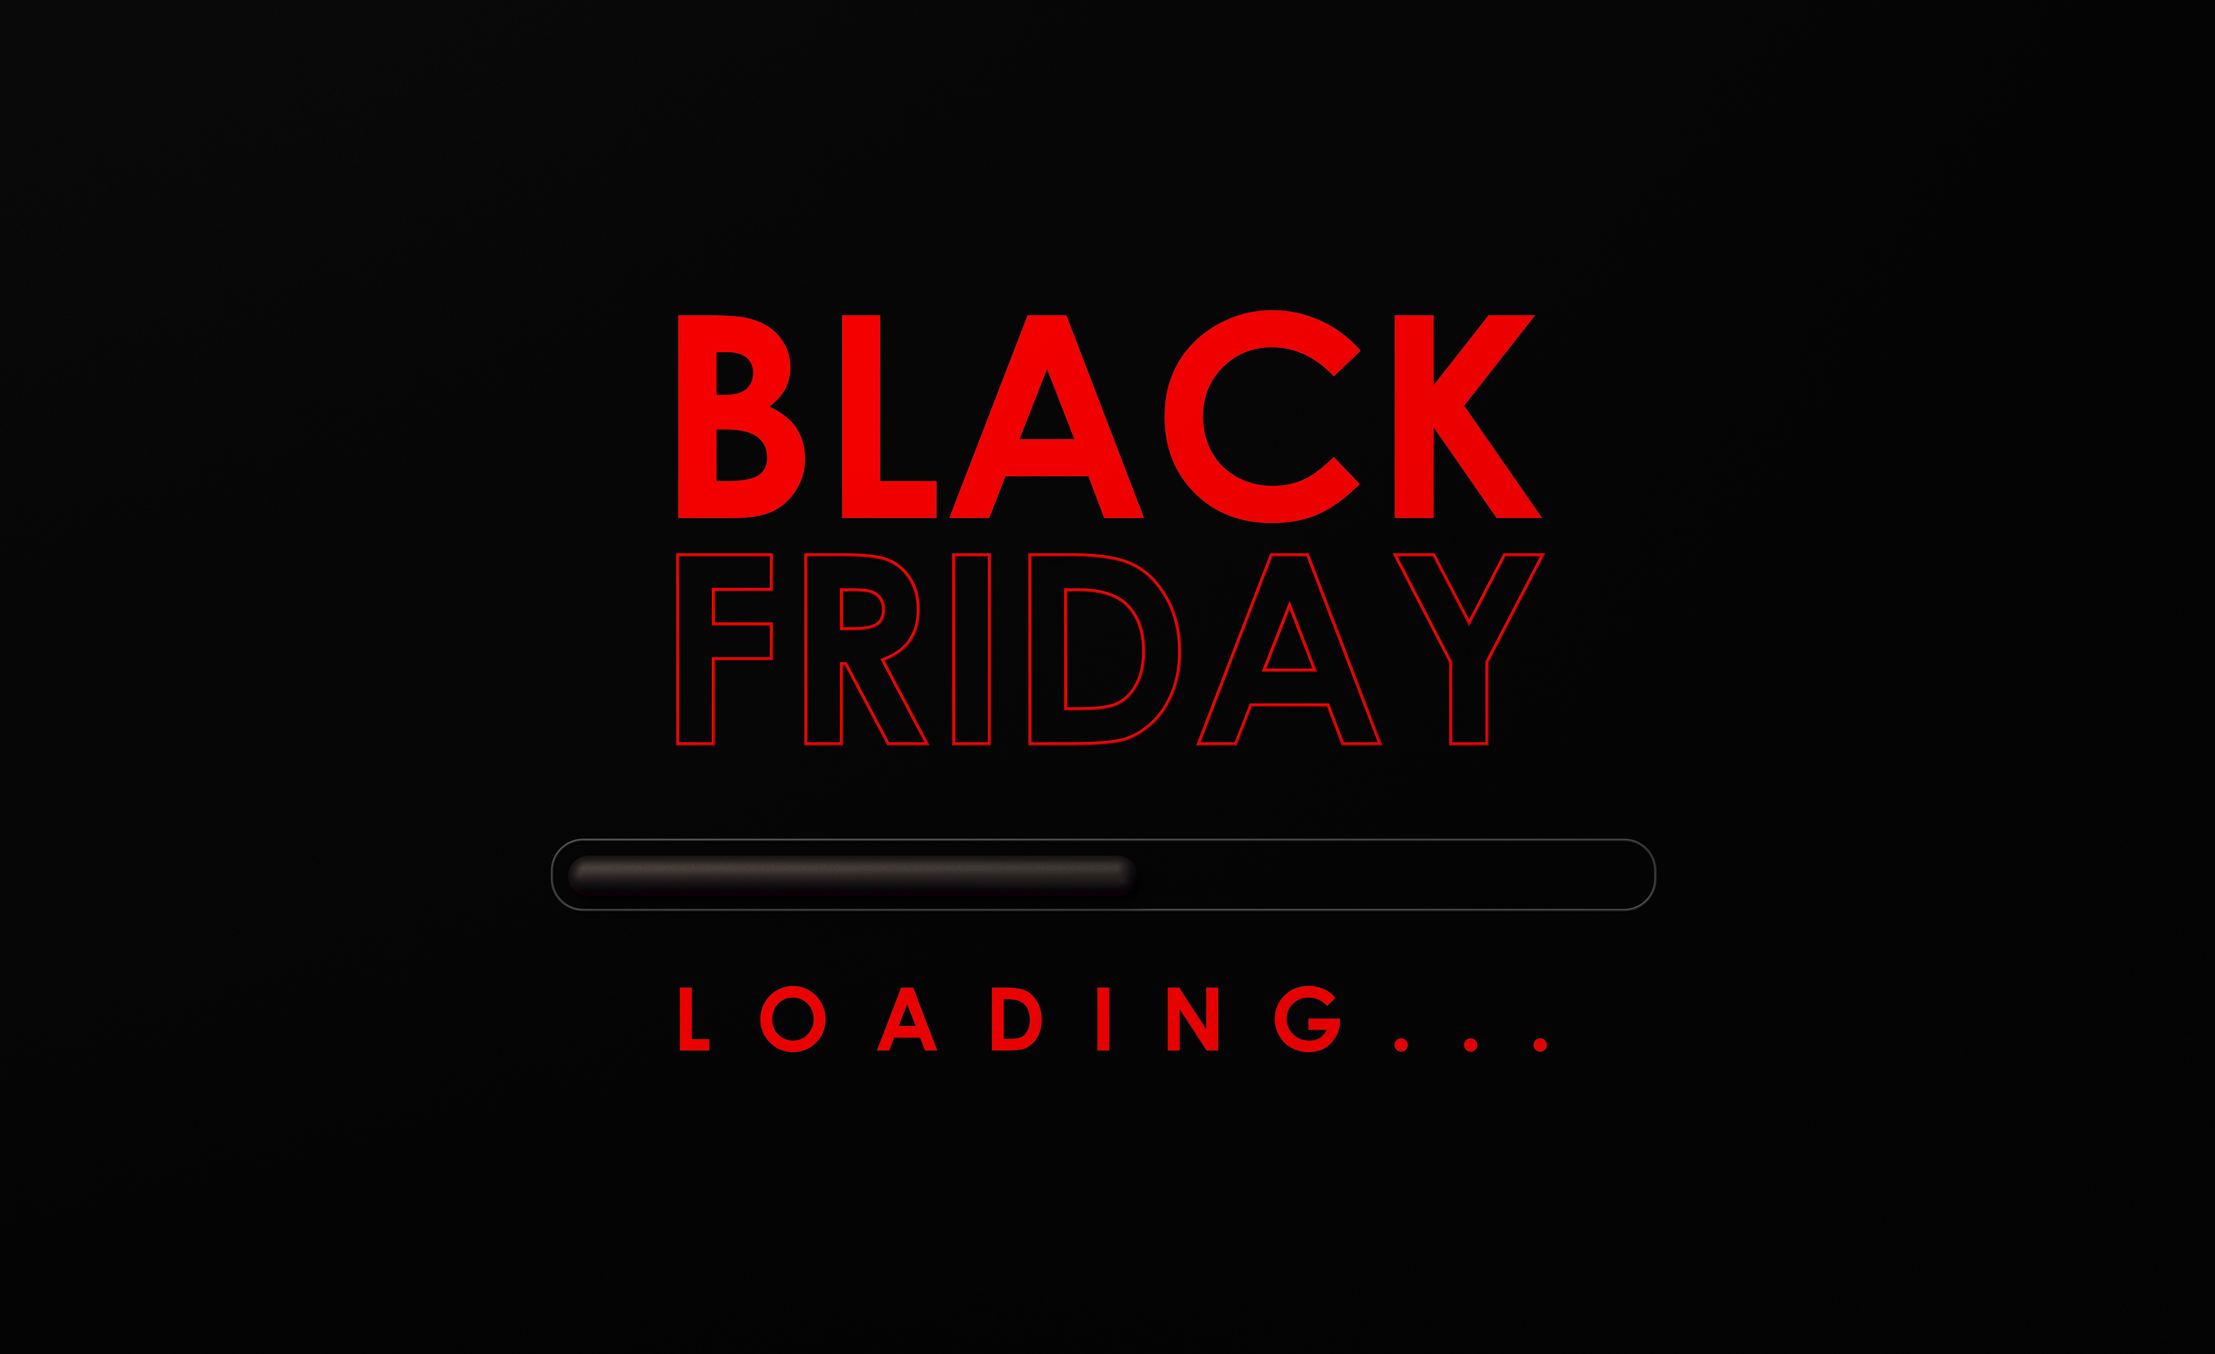 Loading bar with red Black Friday text on black background. Horizontal composition with copy space.